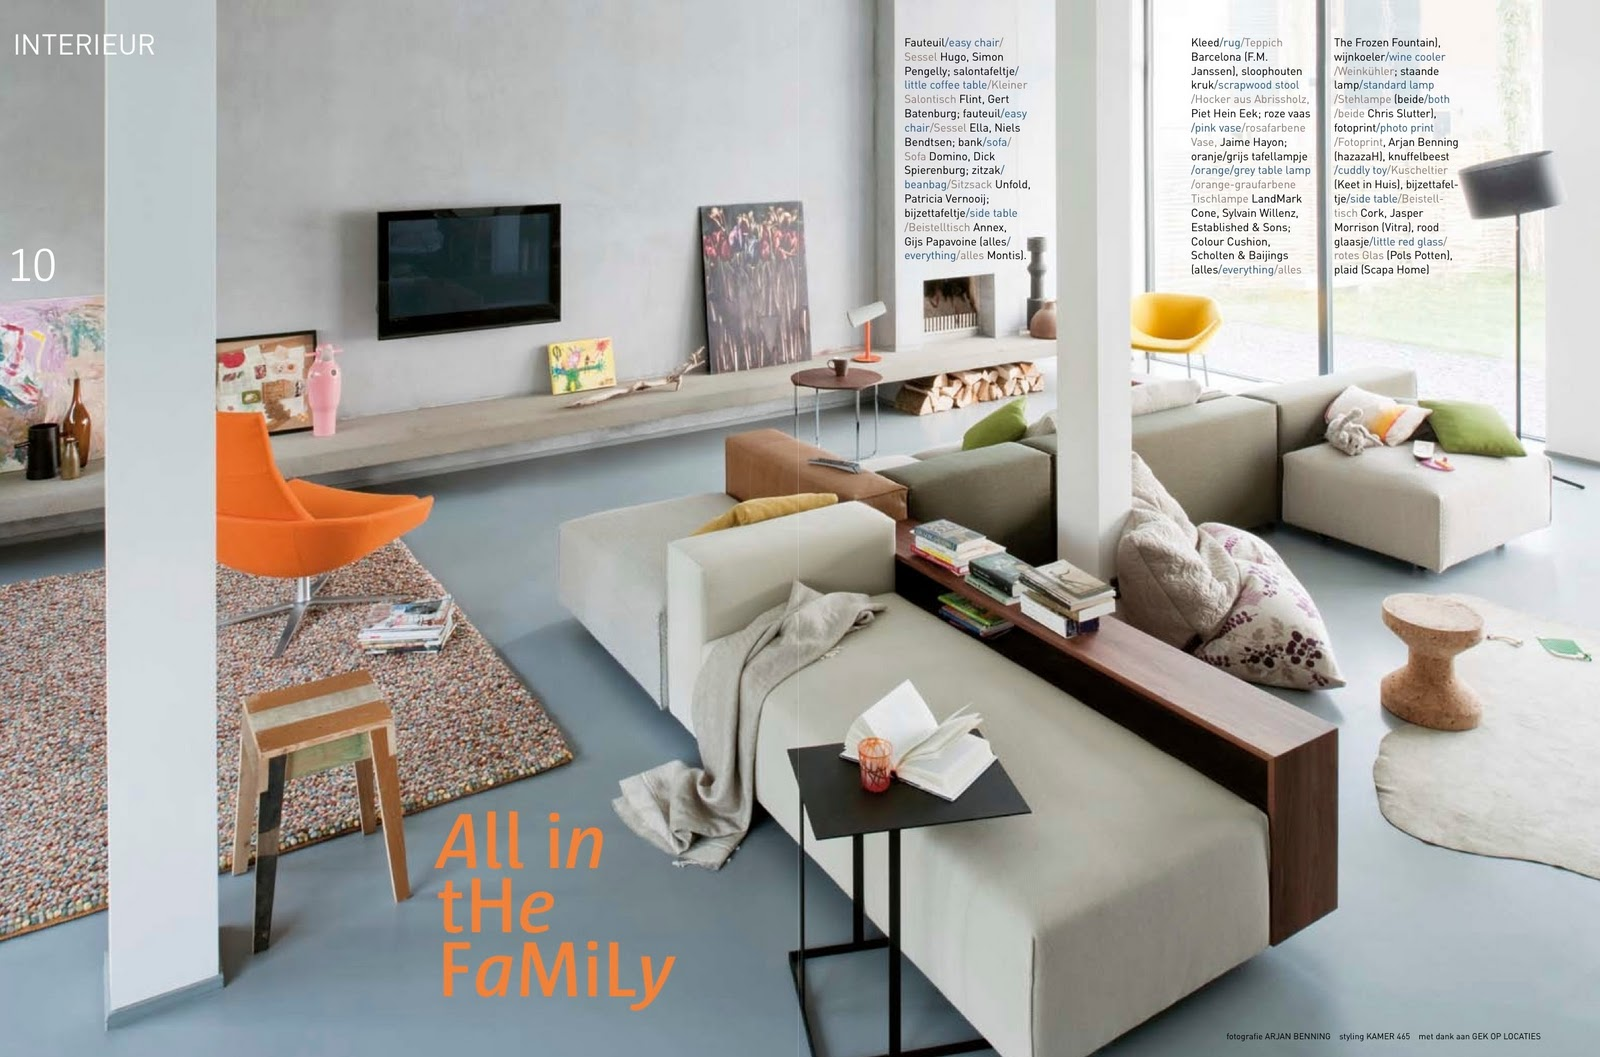 the leather pouf is a design of studio job for montis this picture was used in style guide home 2009 a magazine of perscentrum wonen and rianne landstra